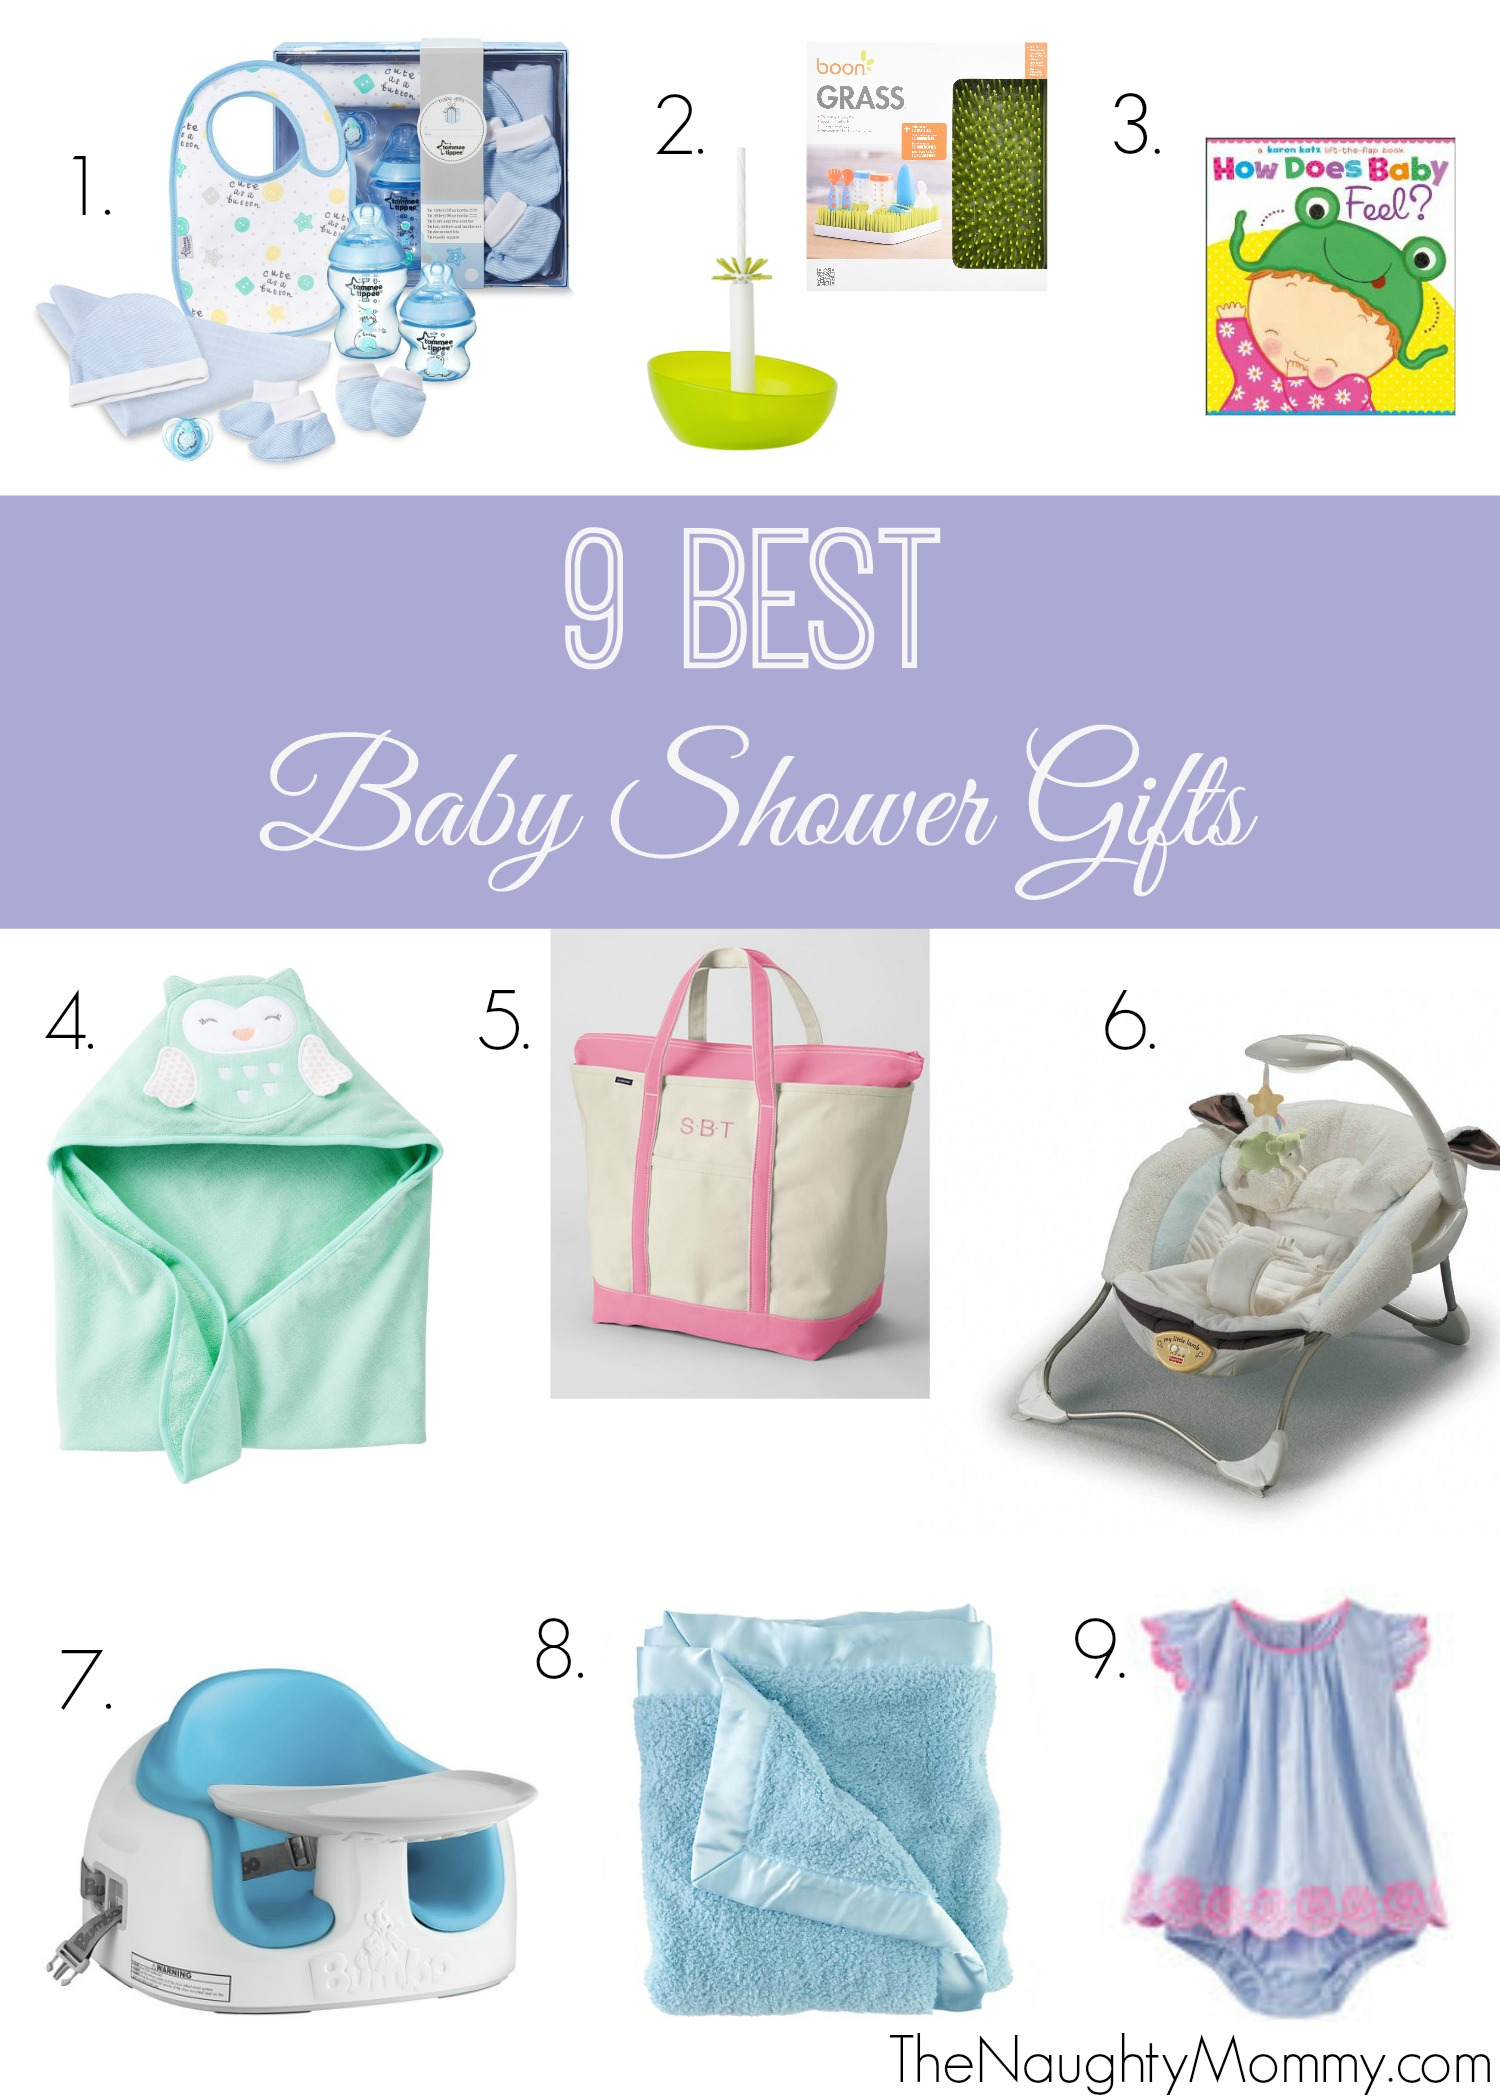 9 Best Baby Shower Gifts The Naughty Mommy